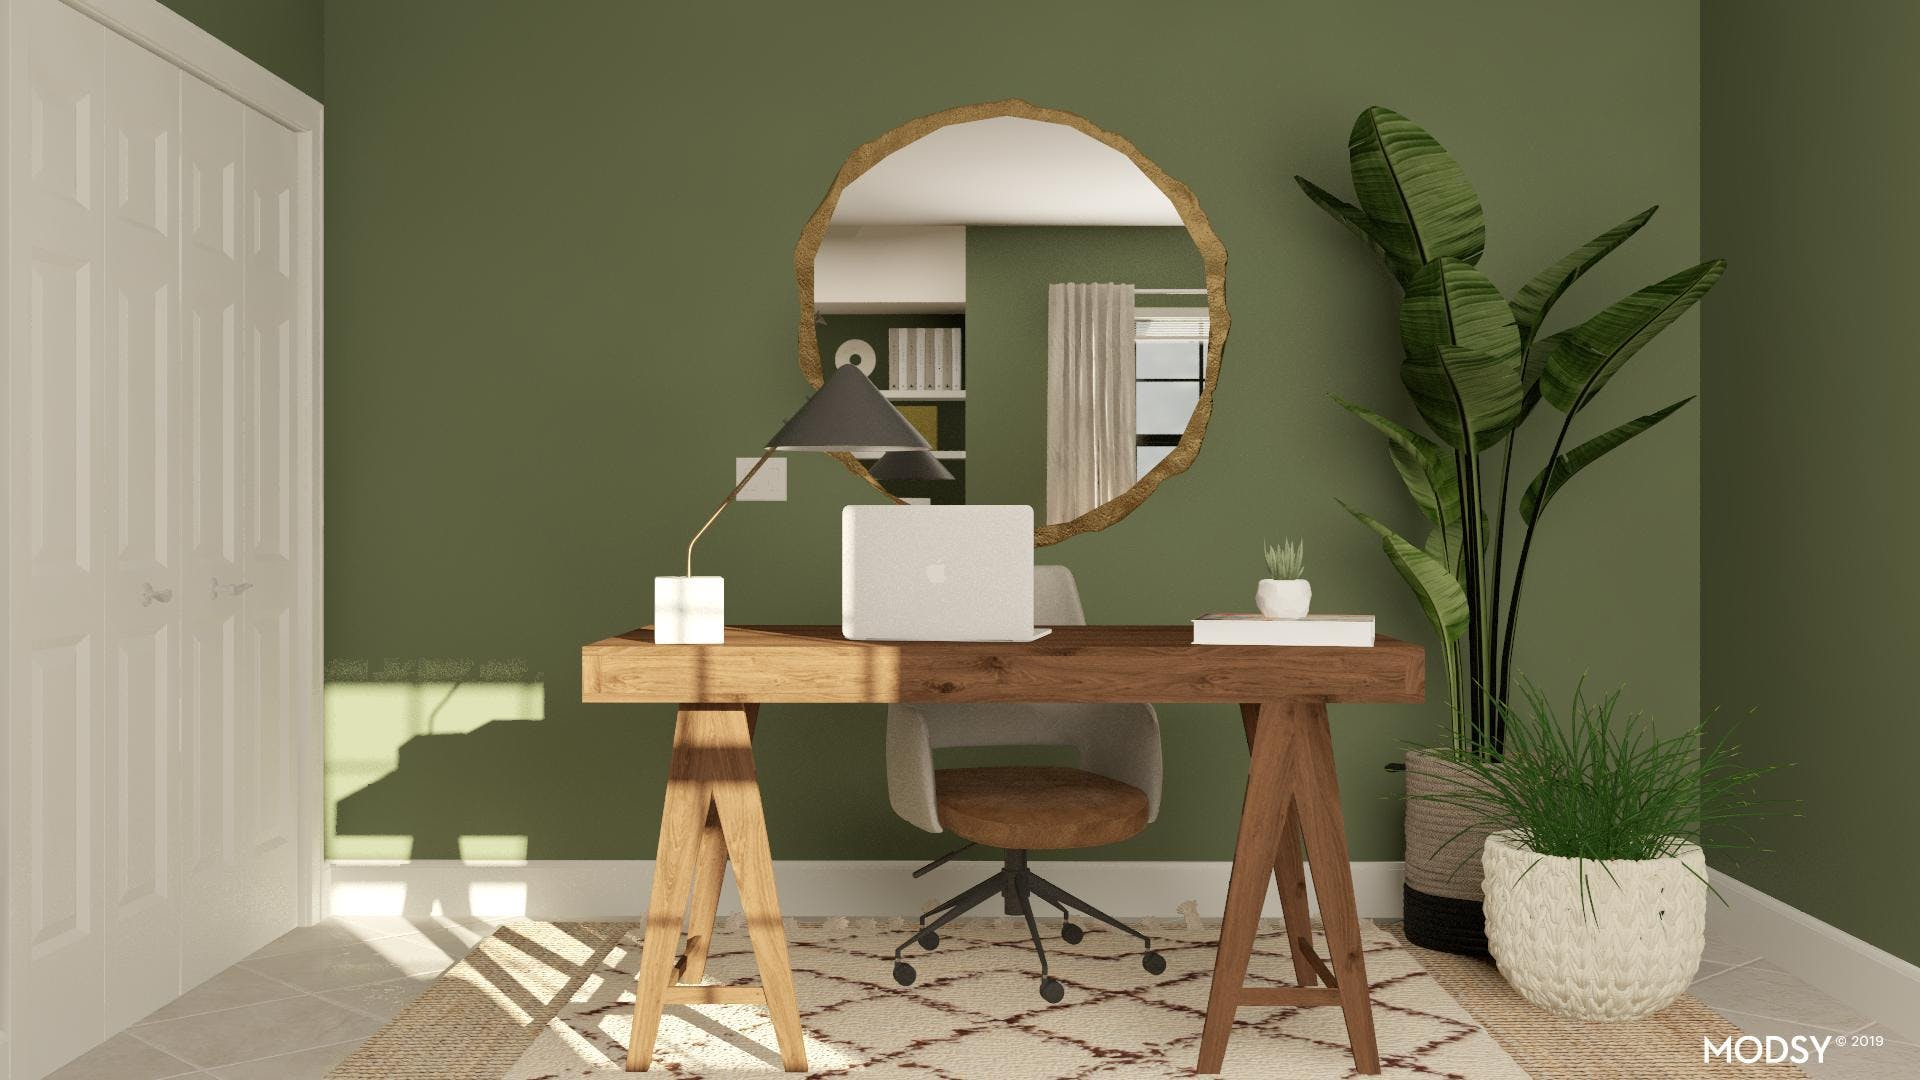 A Floating Desk In A Modern Home Office